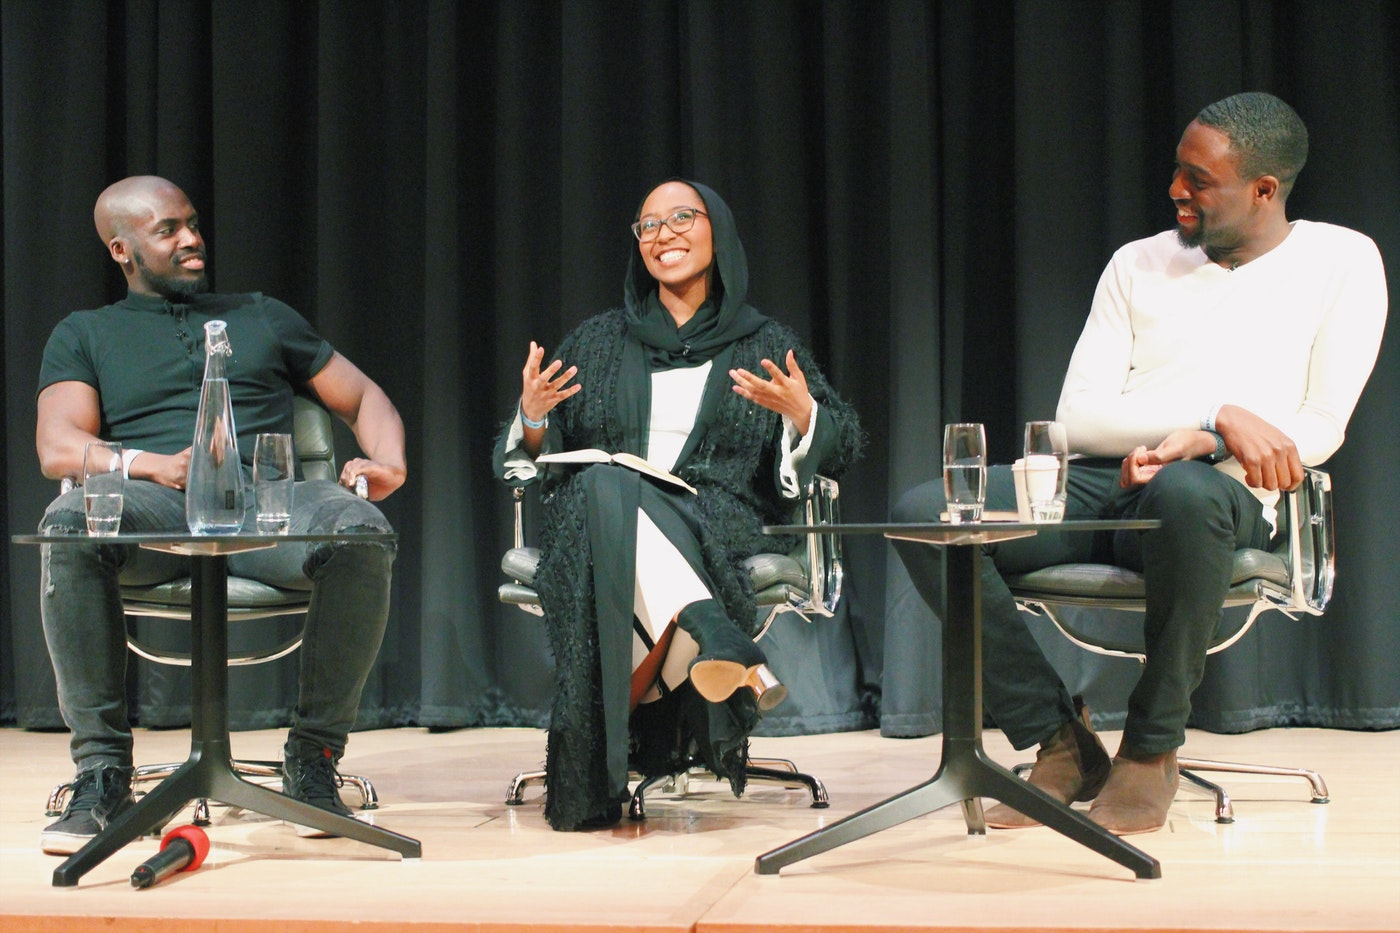 3 people sitting down on a stage speaking